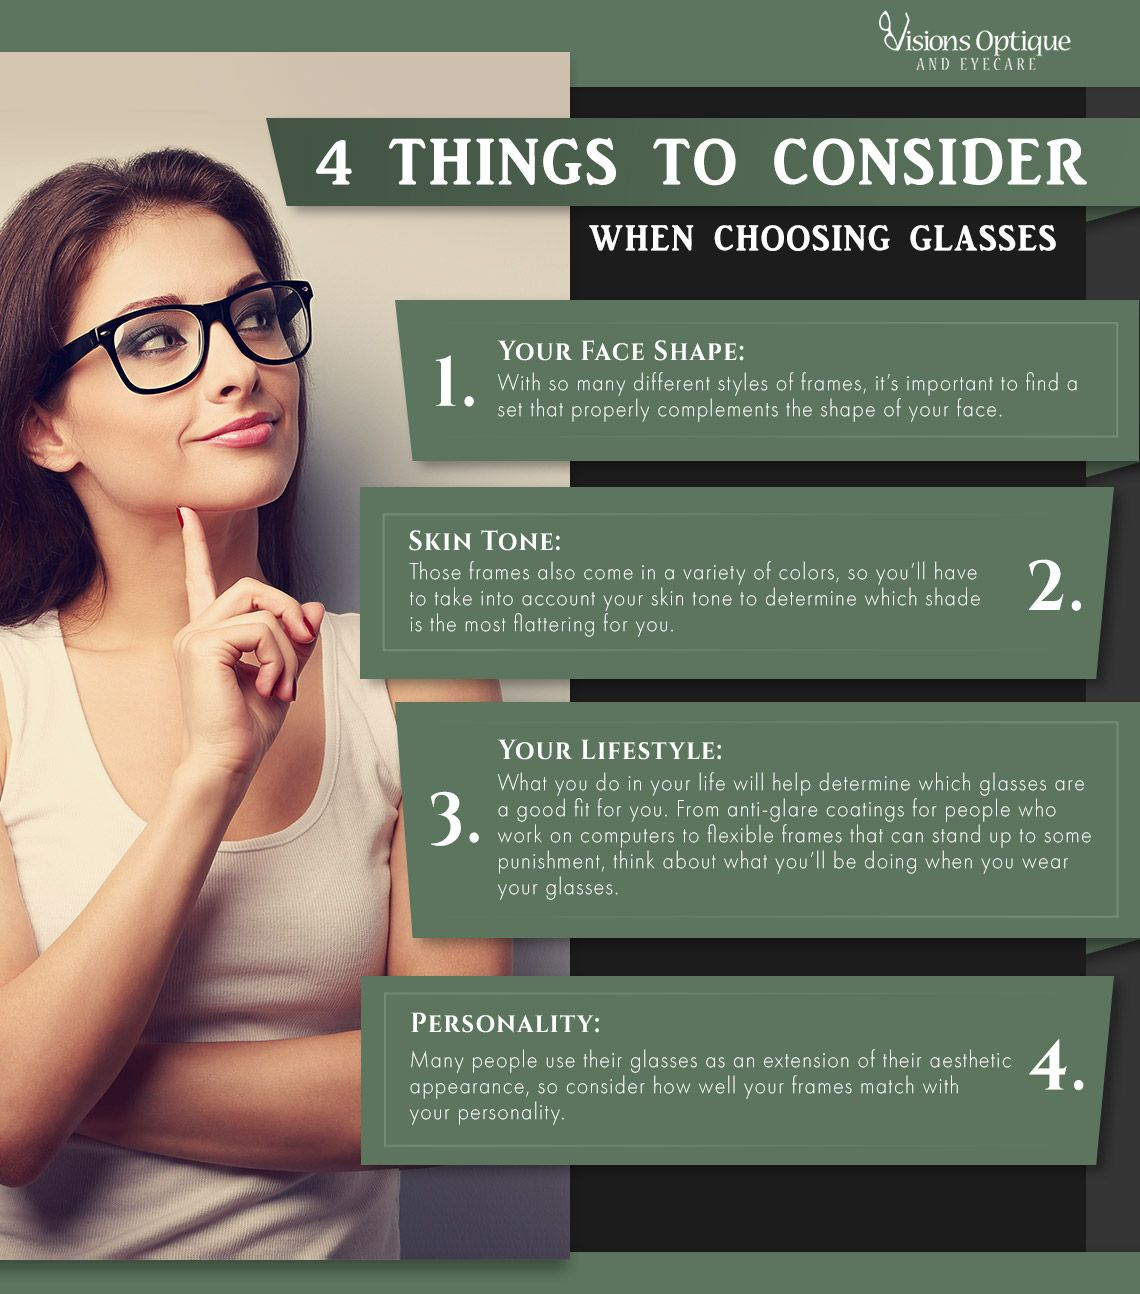 4 things to consider